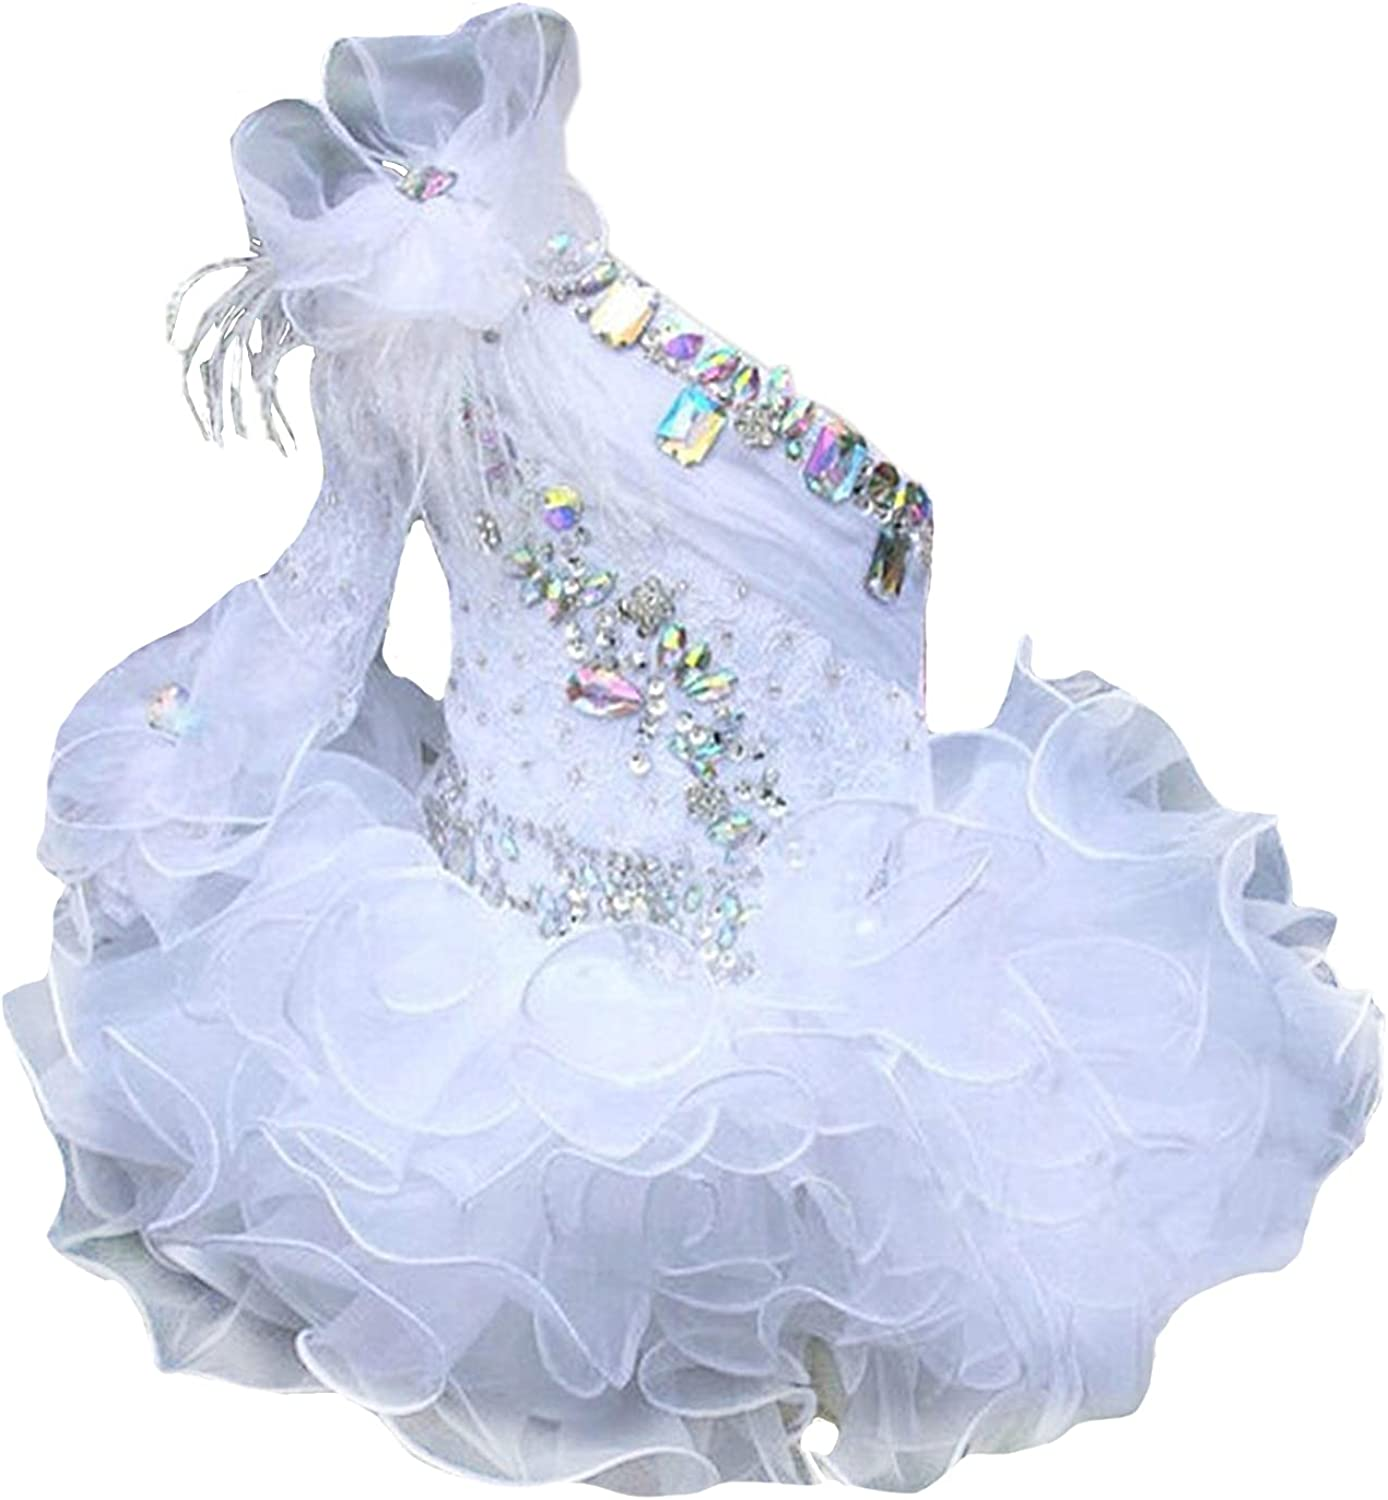 Junguan Infant Girls Special sale item Wedding Party Pageant Tutu Cu Baltimore Mall Newborn Gowns